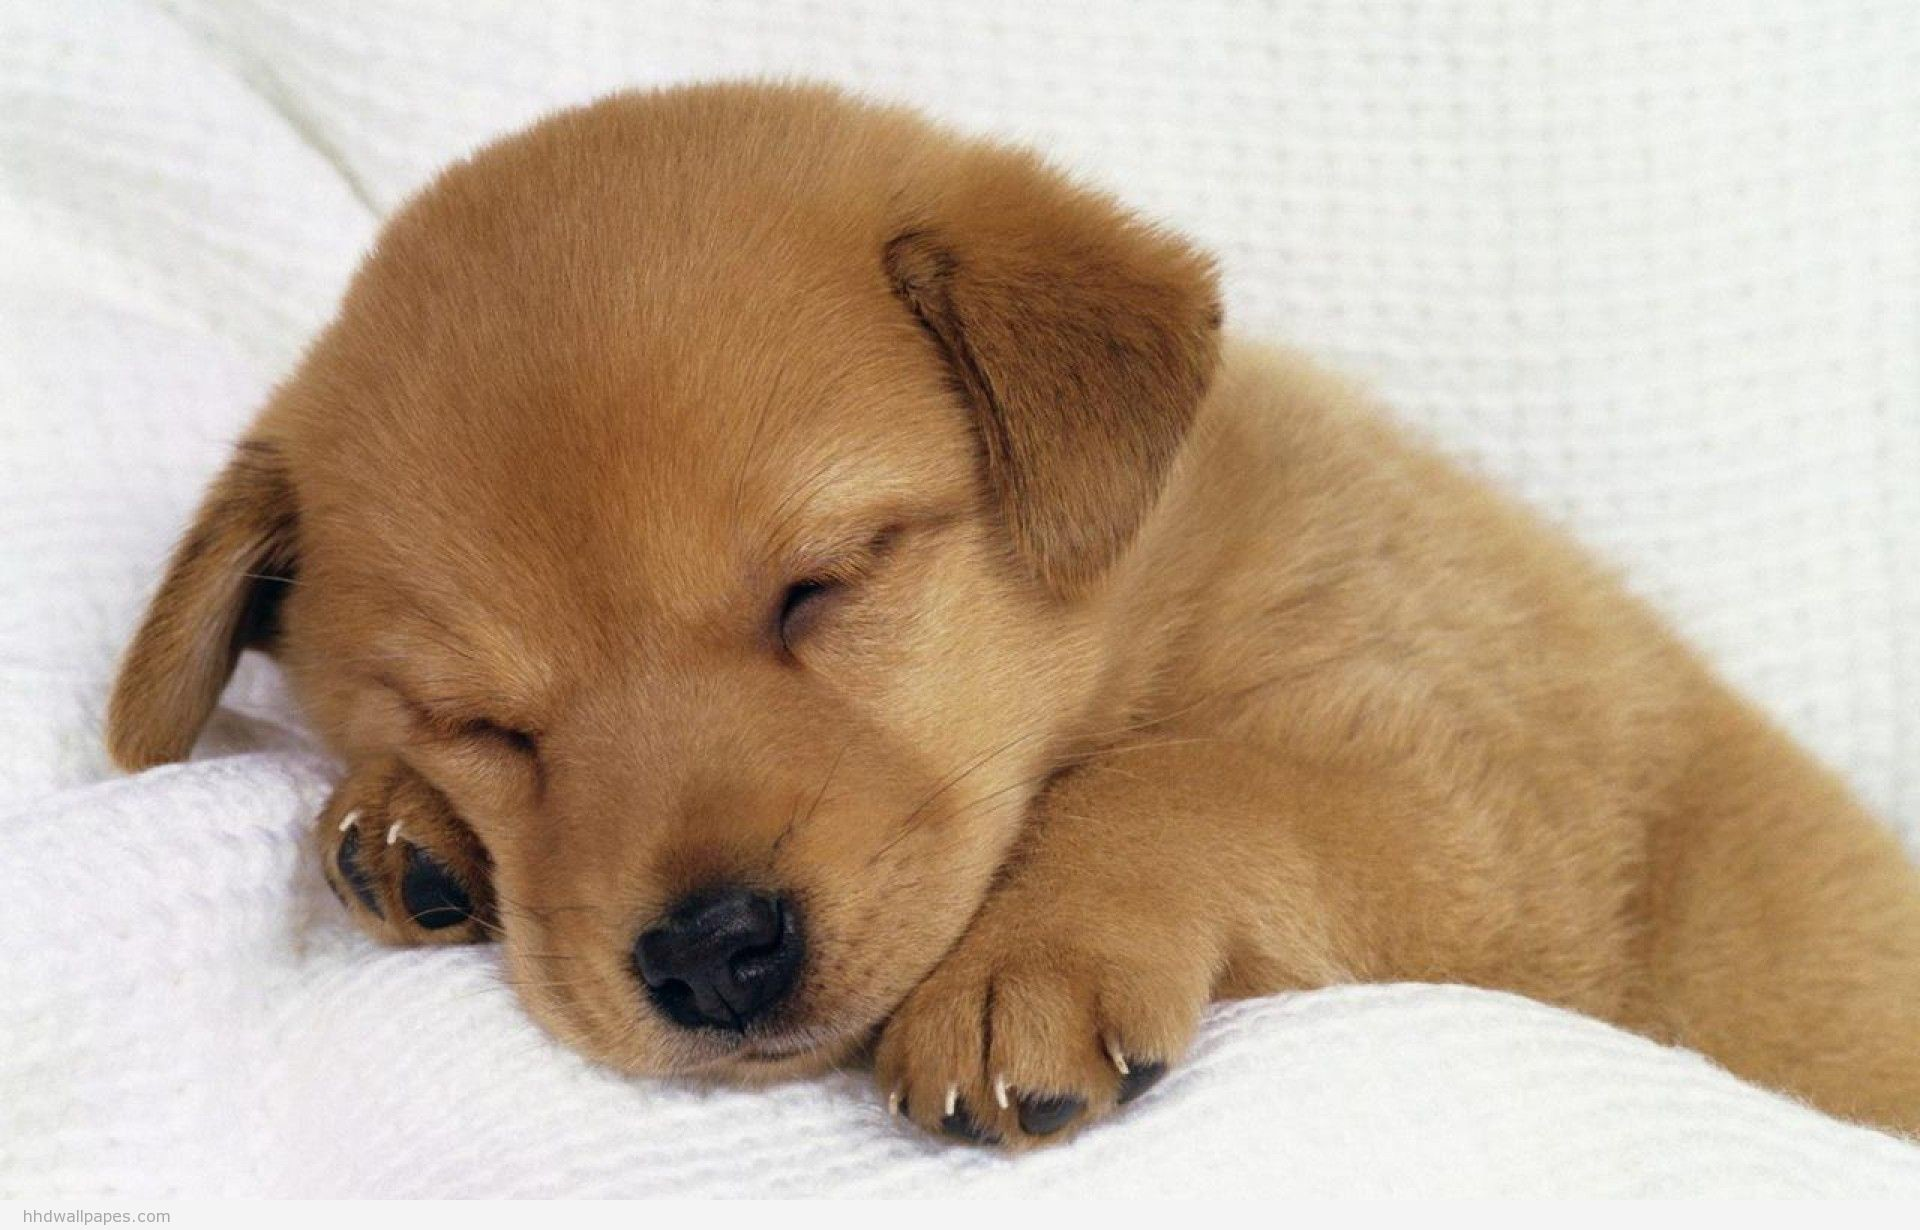 Cute Dog Wallpapers 8694 Hd Wallpapers in Animals – Imagesci.com